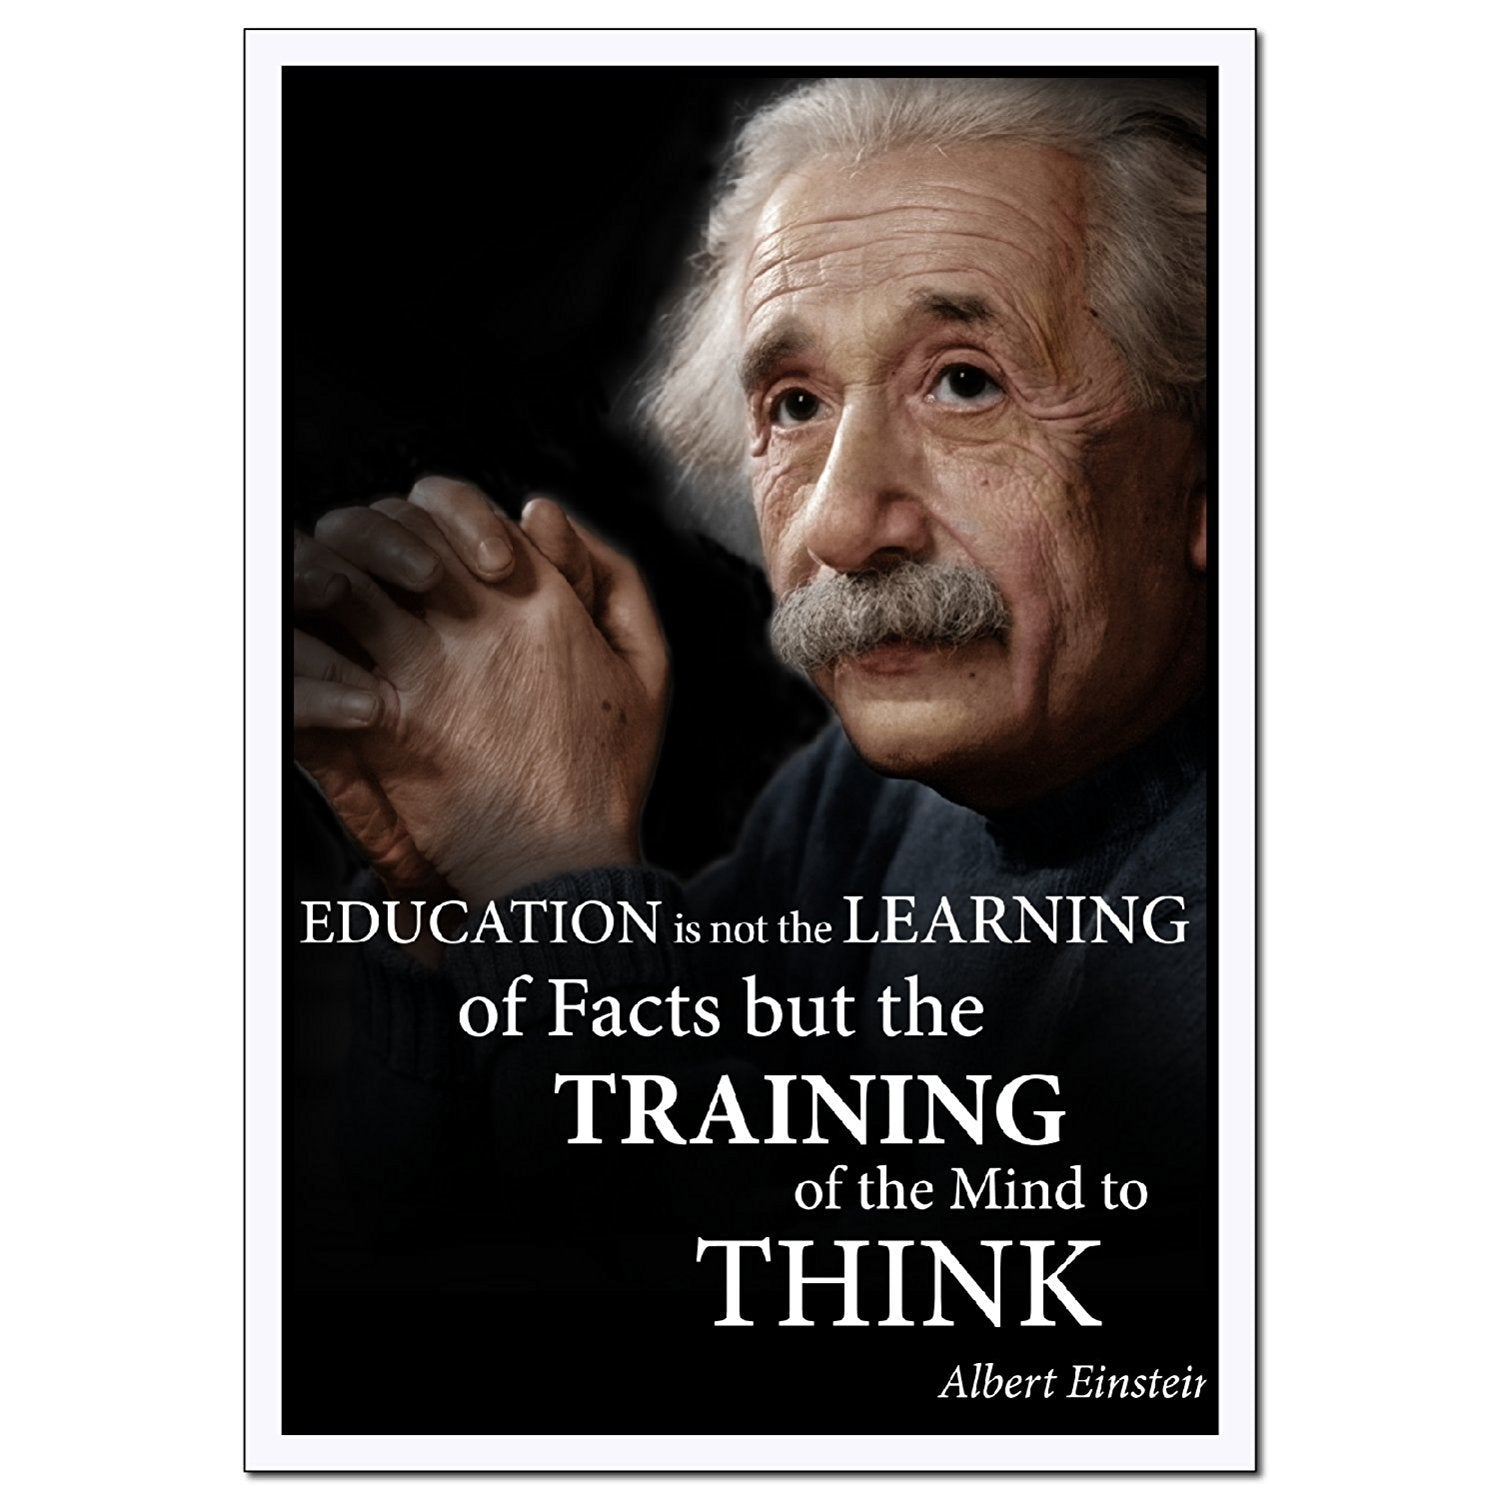 Training of the mind to think Albert Einstein classroom